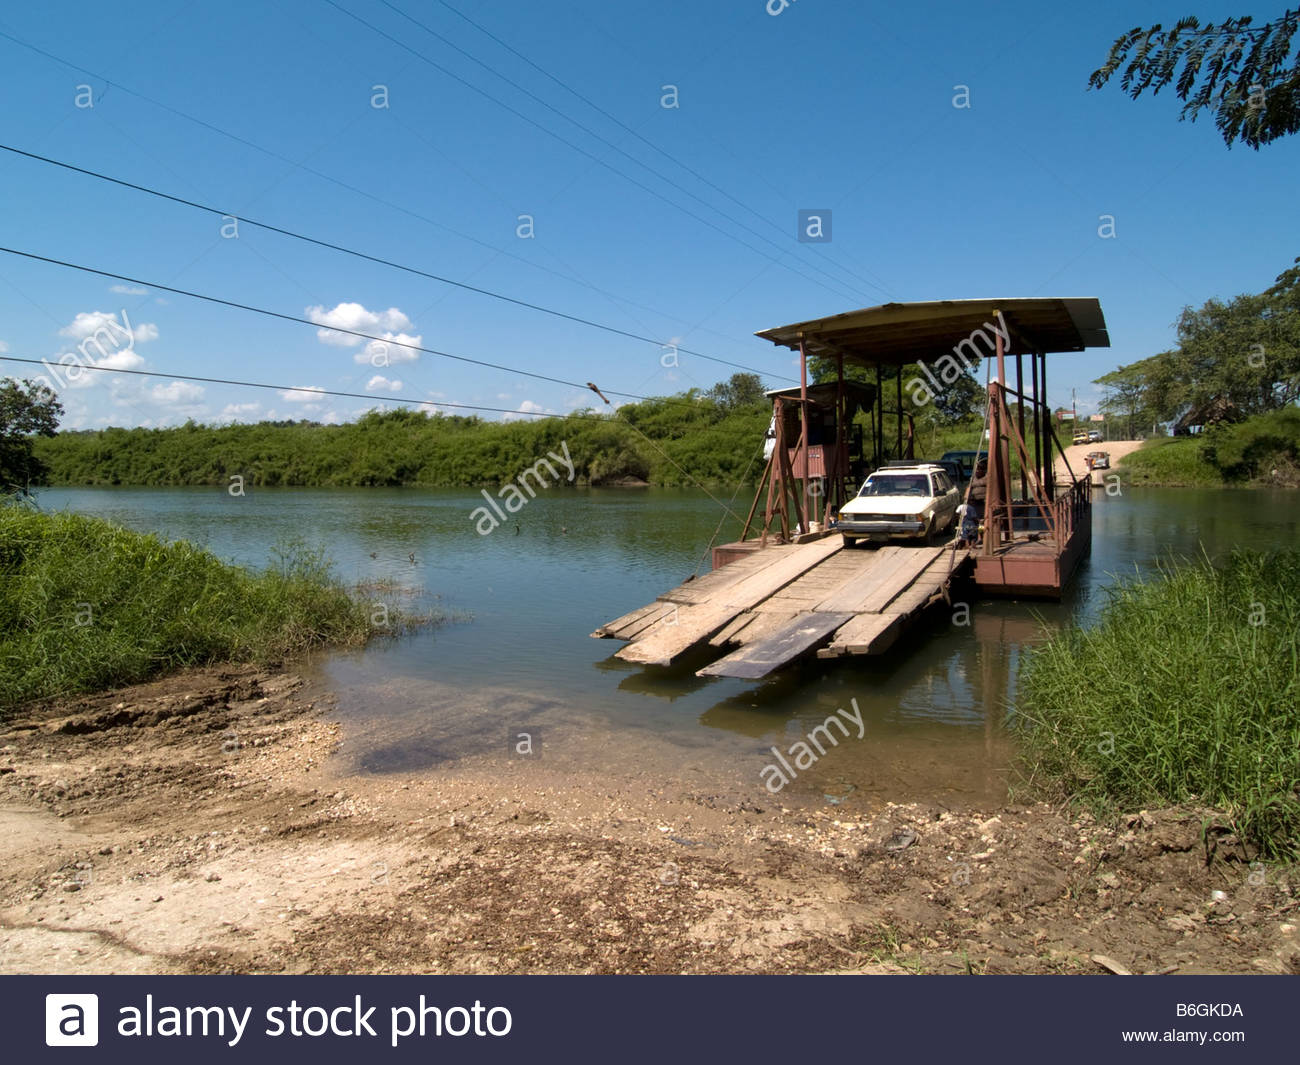 Spanish Lookout The Cayo District, The Baking Pot Ferry crossing the Macal River en route to Spanish ...